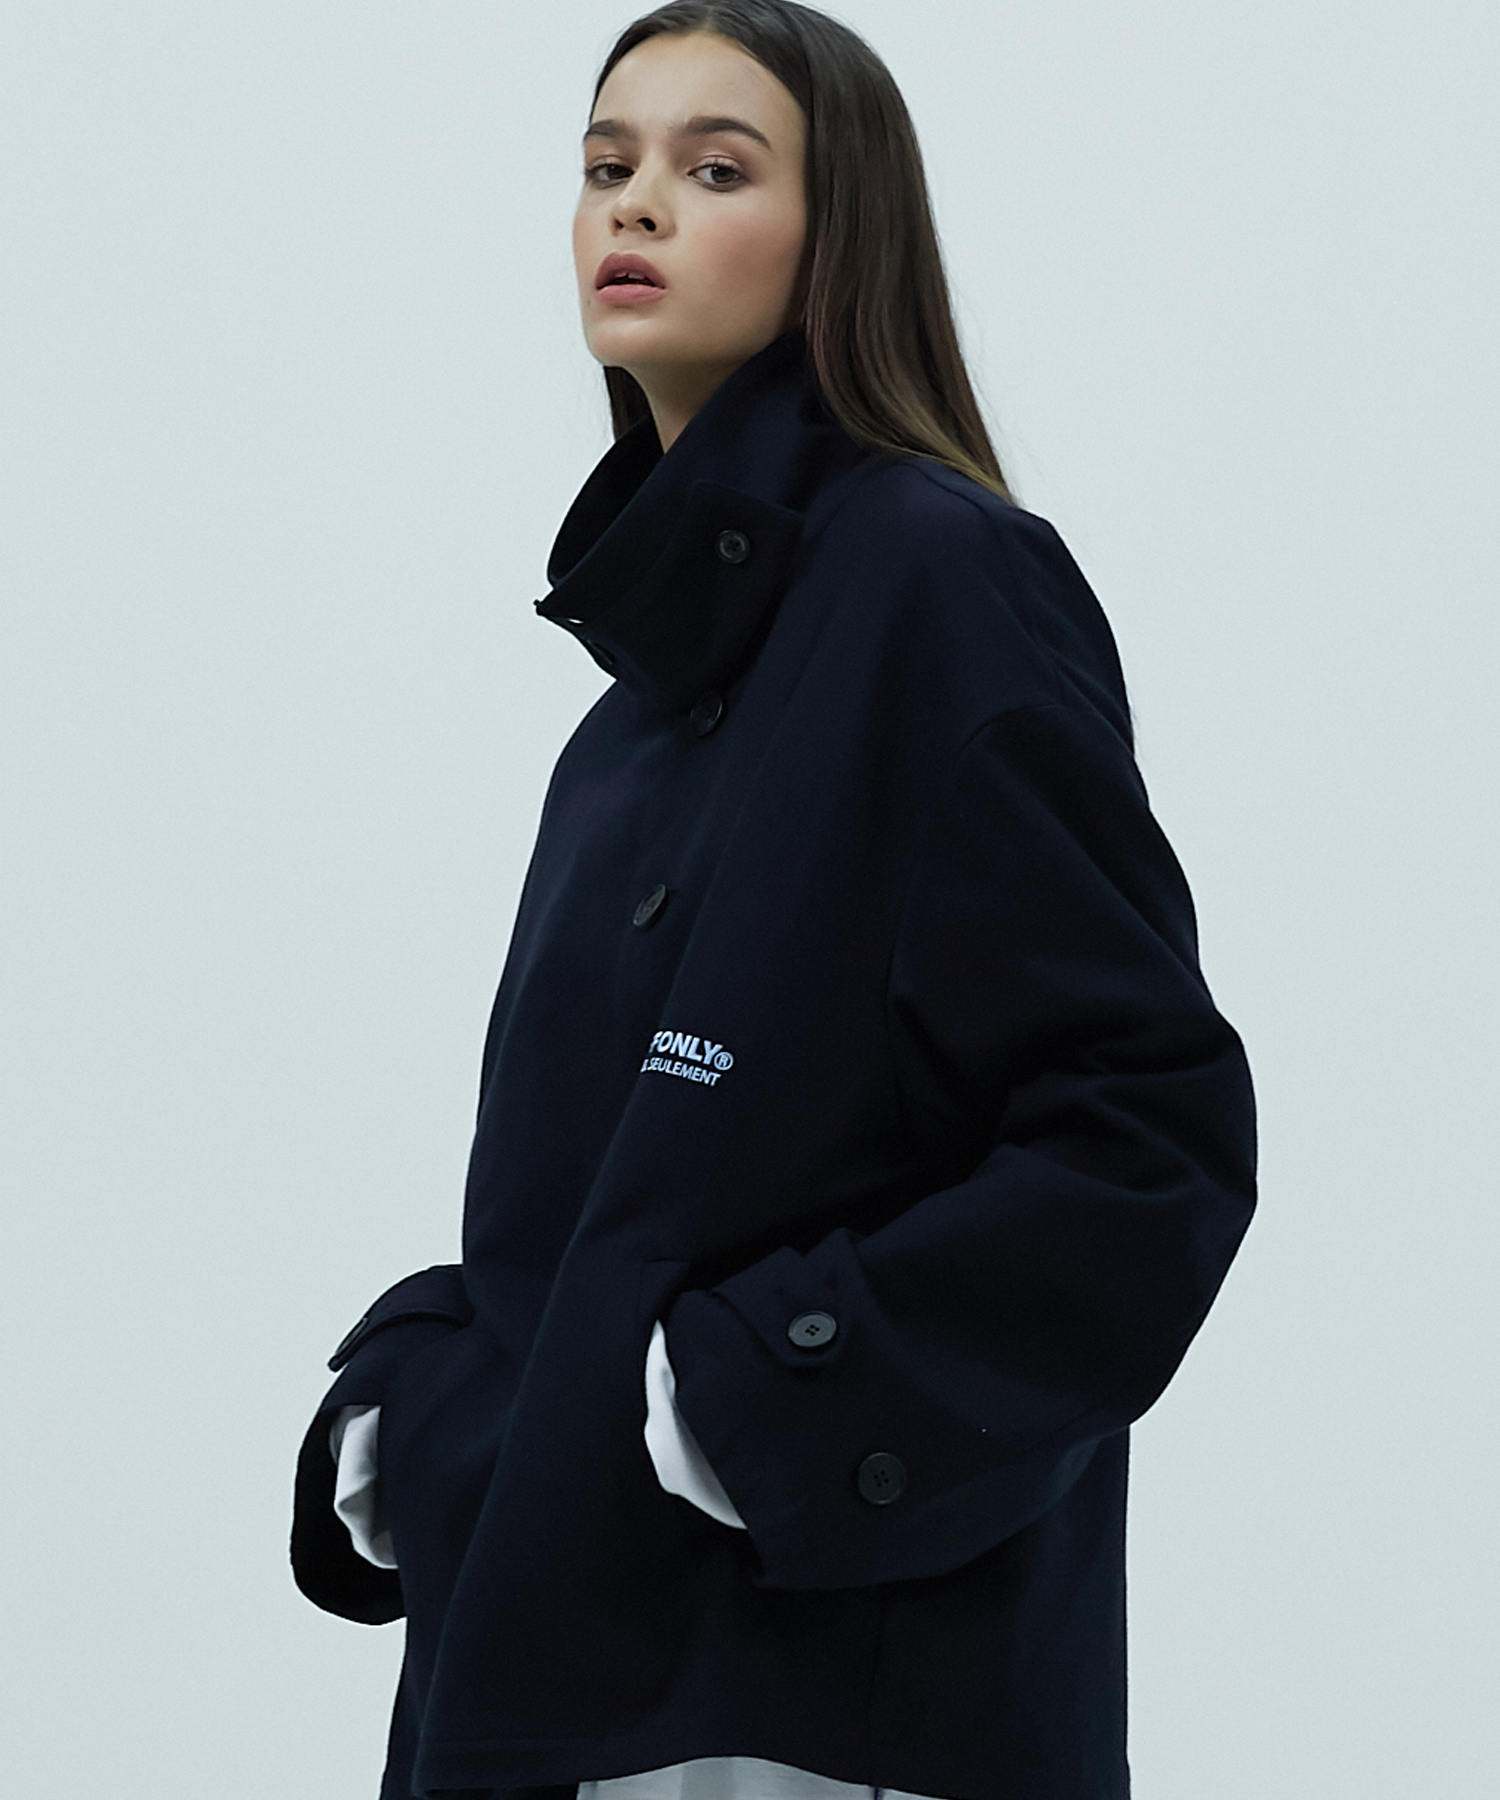 [스텝온리]50L WHEELIE BIN JACKET (NAVY)